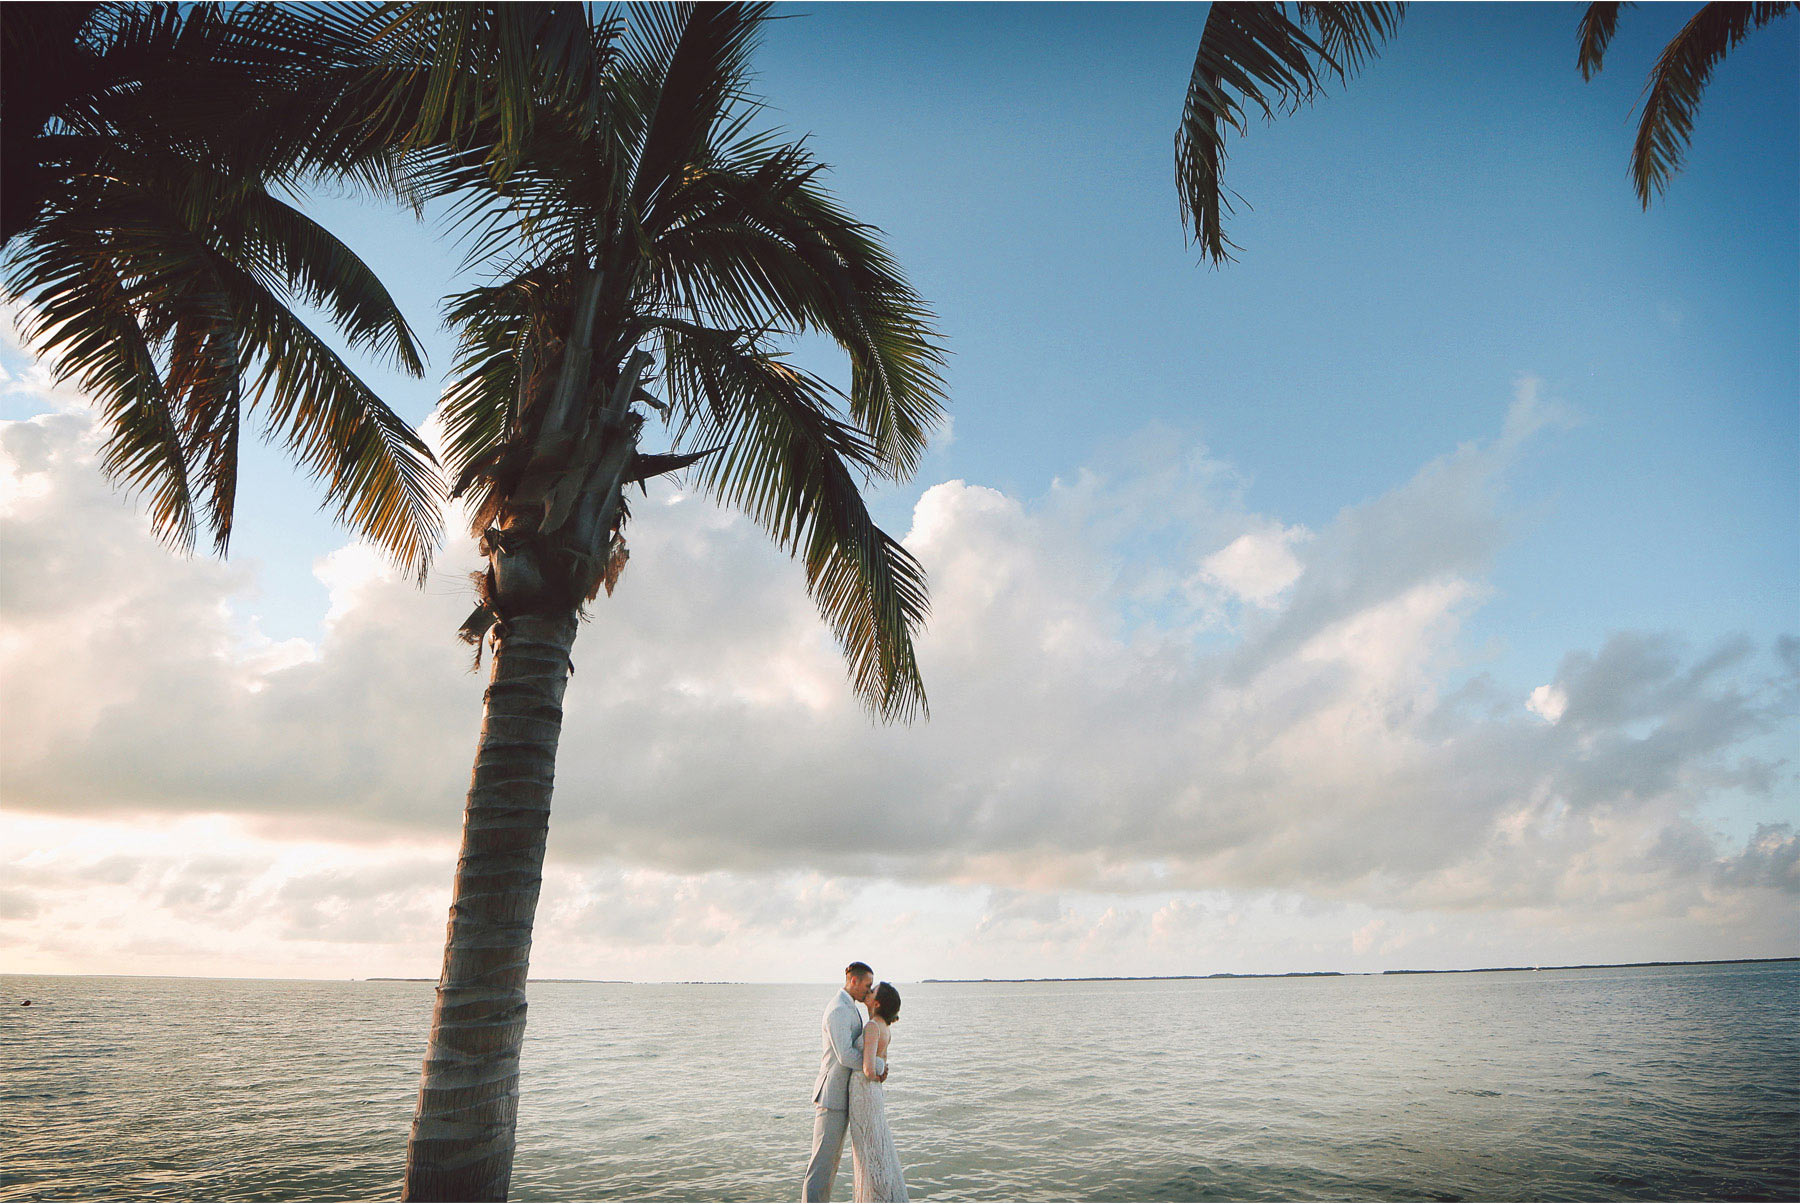 17-Key-Largo-Florida-Keys-Wedding-Photographer-by-Andrew-Vick-Photography-Playa-Largo-Resort-and-Spa-Hotel-Destination-Winter-Bride-Groom-Kiss-Water-Ocean-Palm-Trees-Vintage-Carrie-and-Brian.jpg